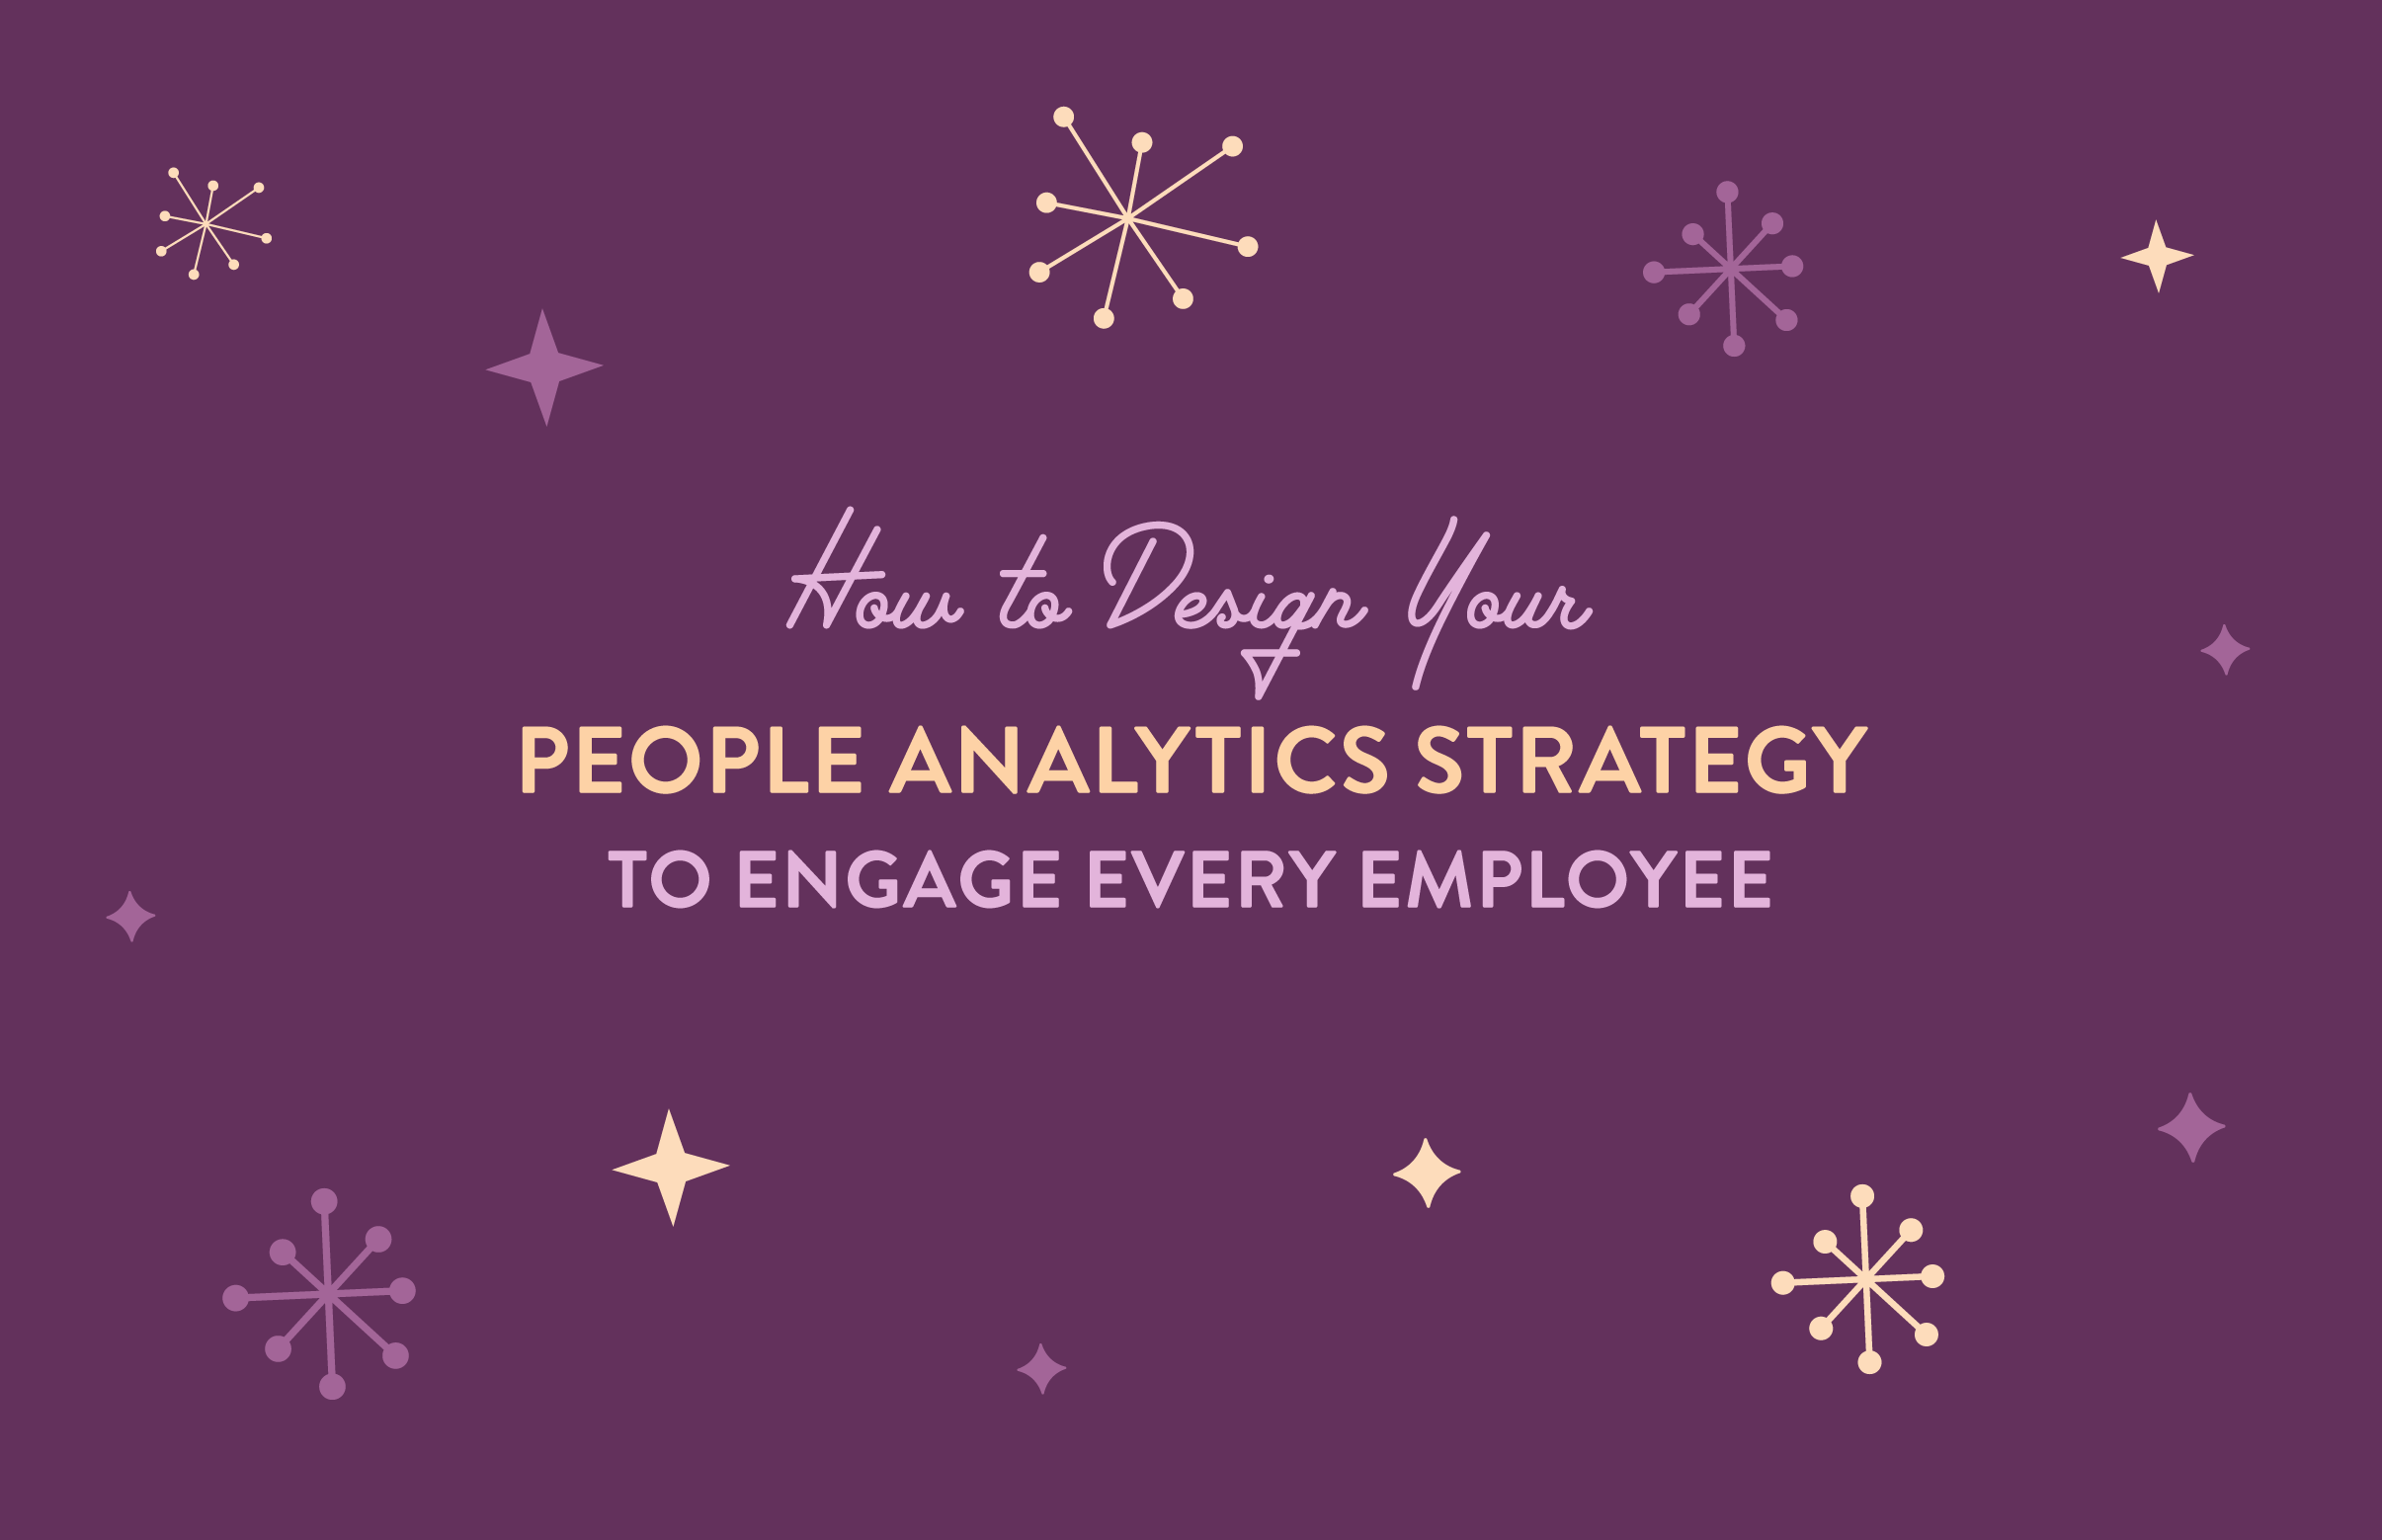 How to Design Your People Analytics Strategy to Engage Every Employee